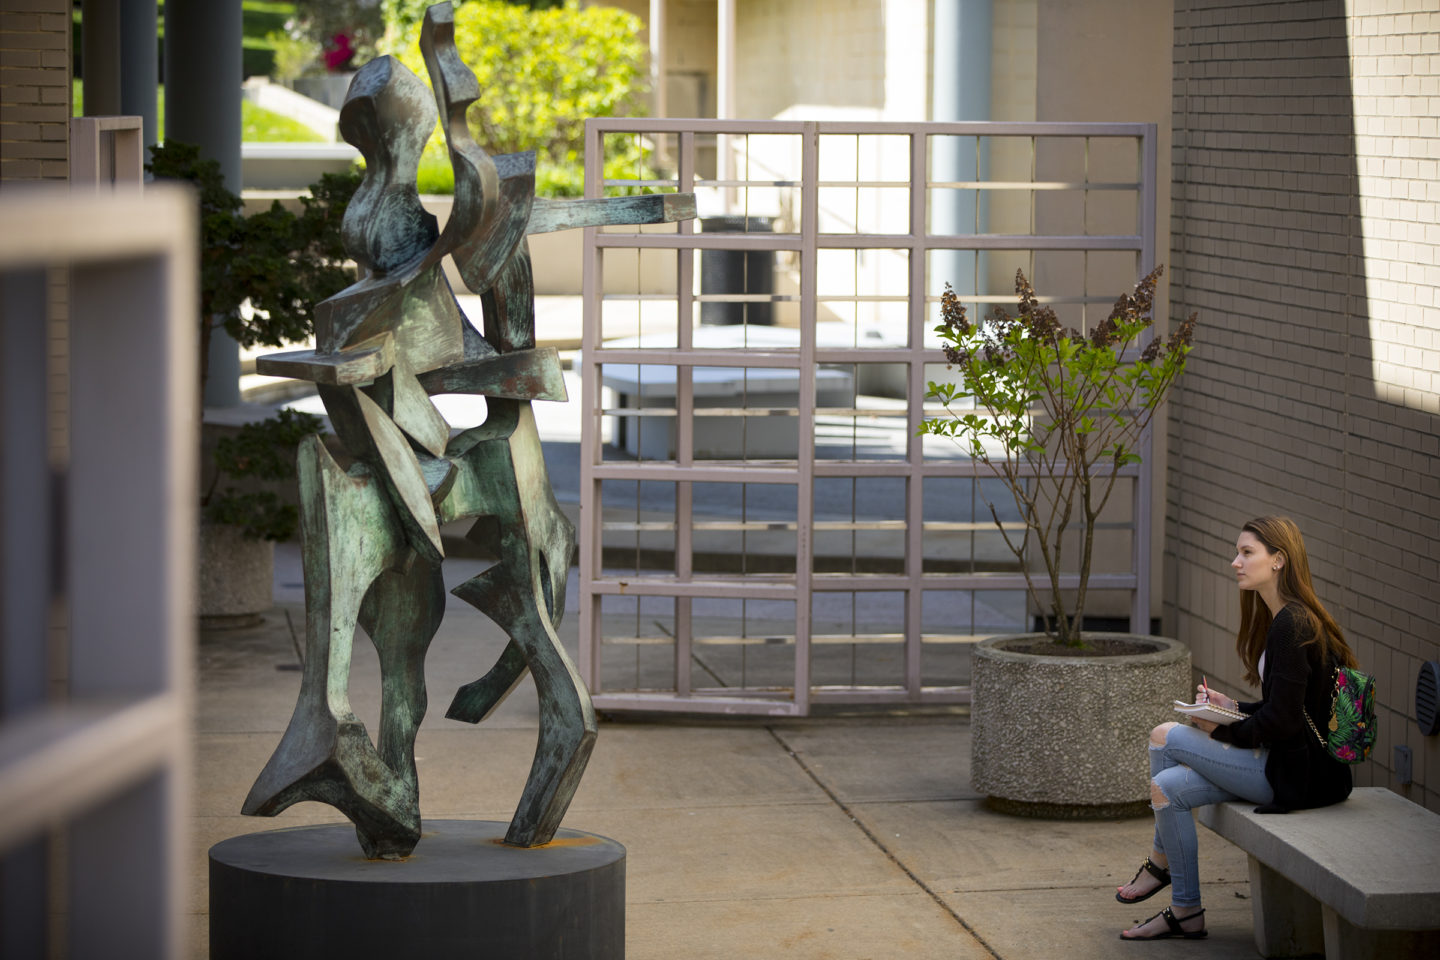 Student in sculpture garden